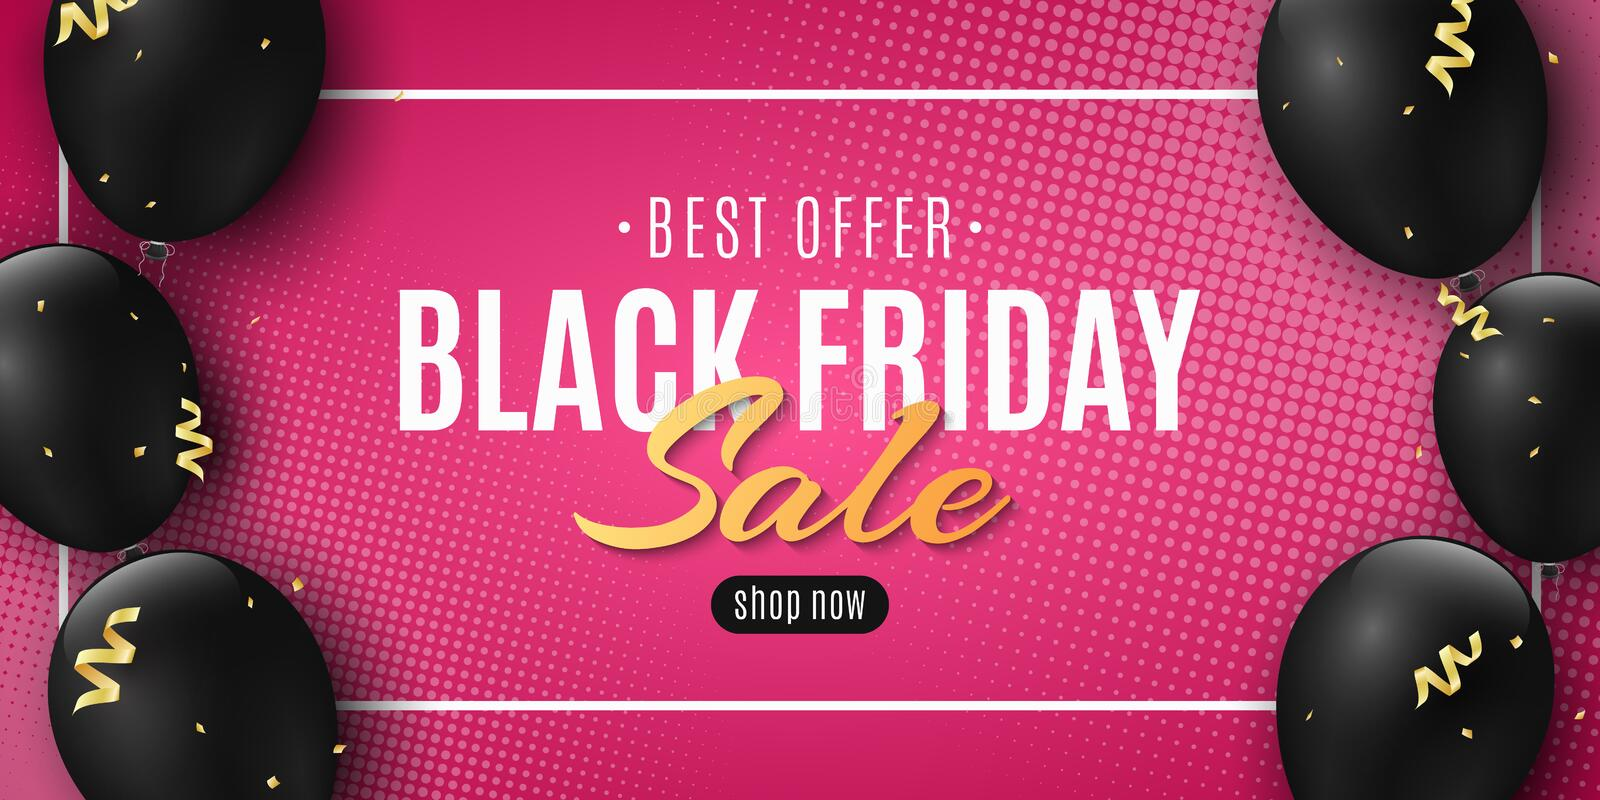 Sale banner for Black Friday. Golden confetti and serpentine. Flying black balloons. Beautiful lettering. Pink background and. Halftone effect. Seasonal vector illustration